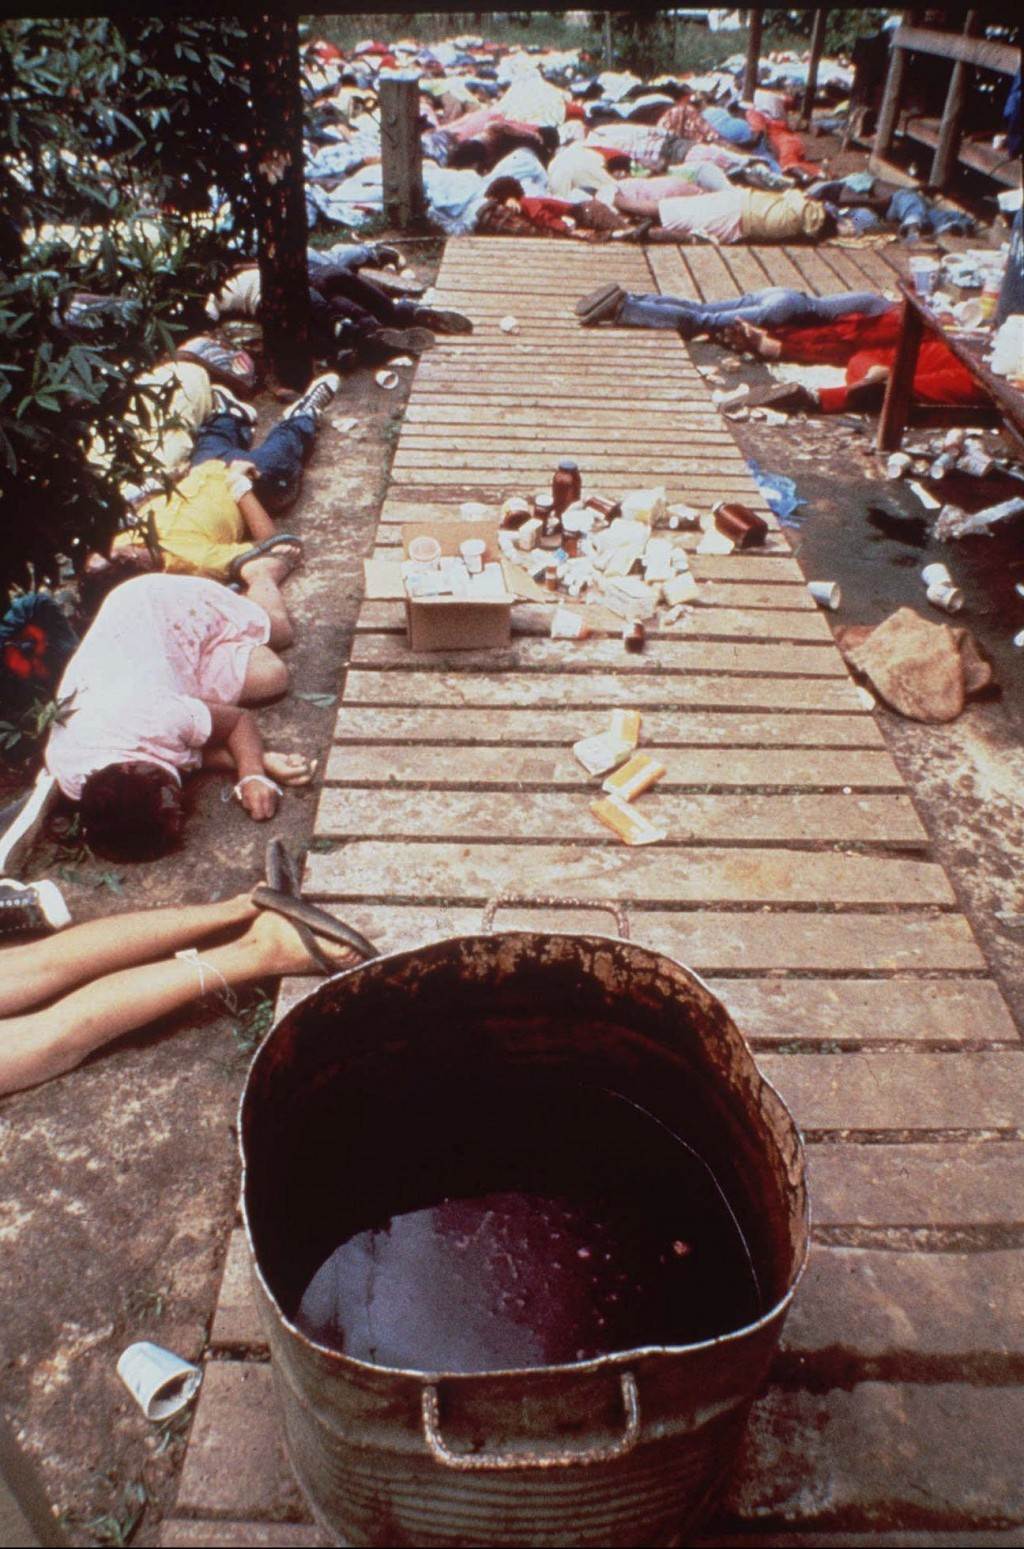 FILE - In this Nov. 20, 1978 file photo, a vat that contained a drink laced with deadly cyanide sits on a sidewalk at Peoples Temple in Jonestown, Guy